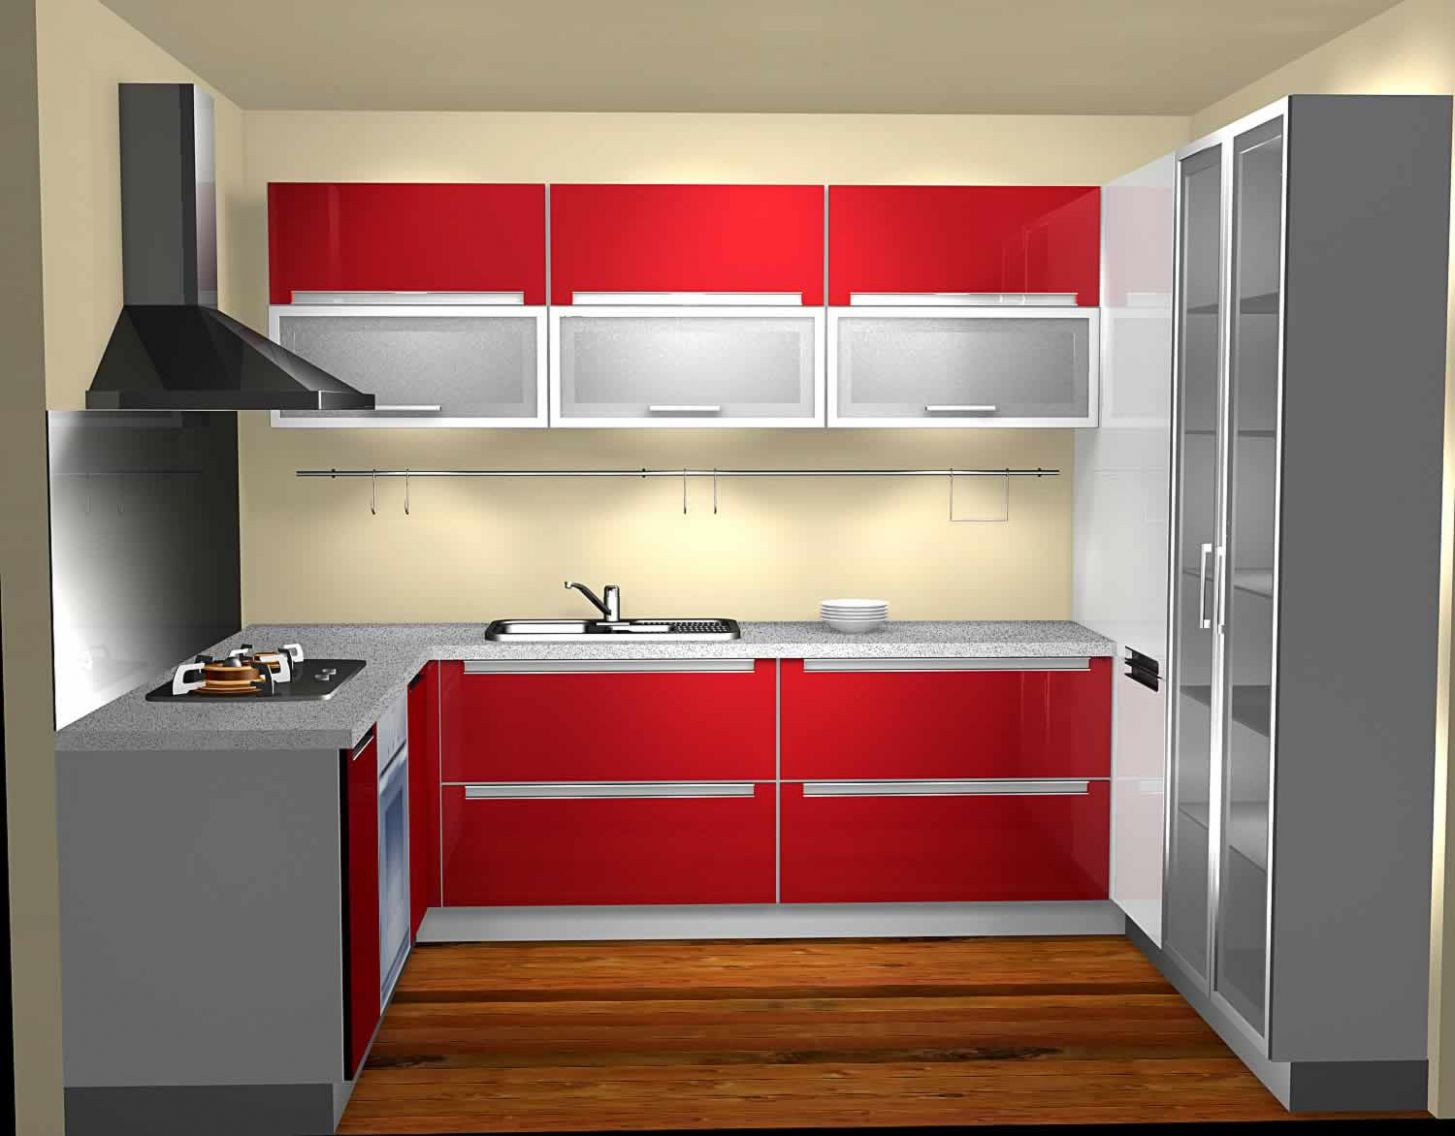 Picture of 10D Design Tiny U Shaped Kitchen with Red and White Cabinets